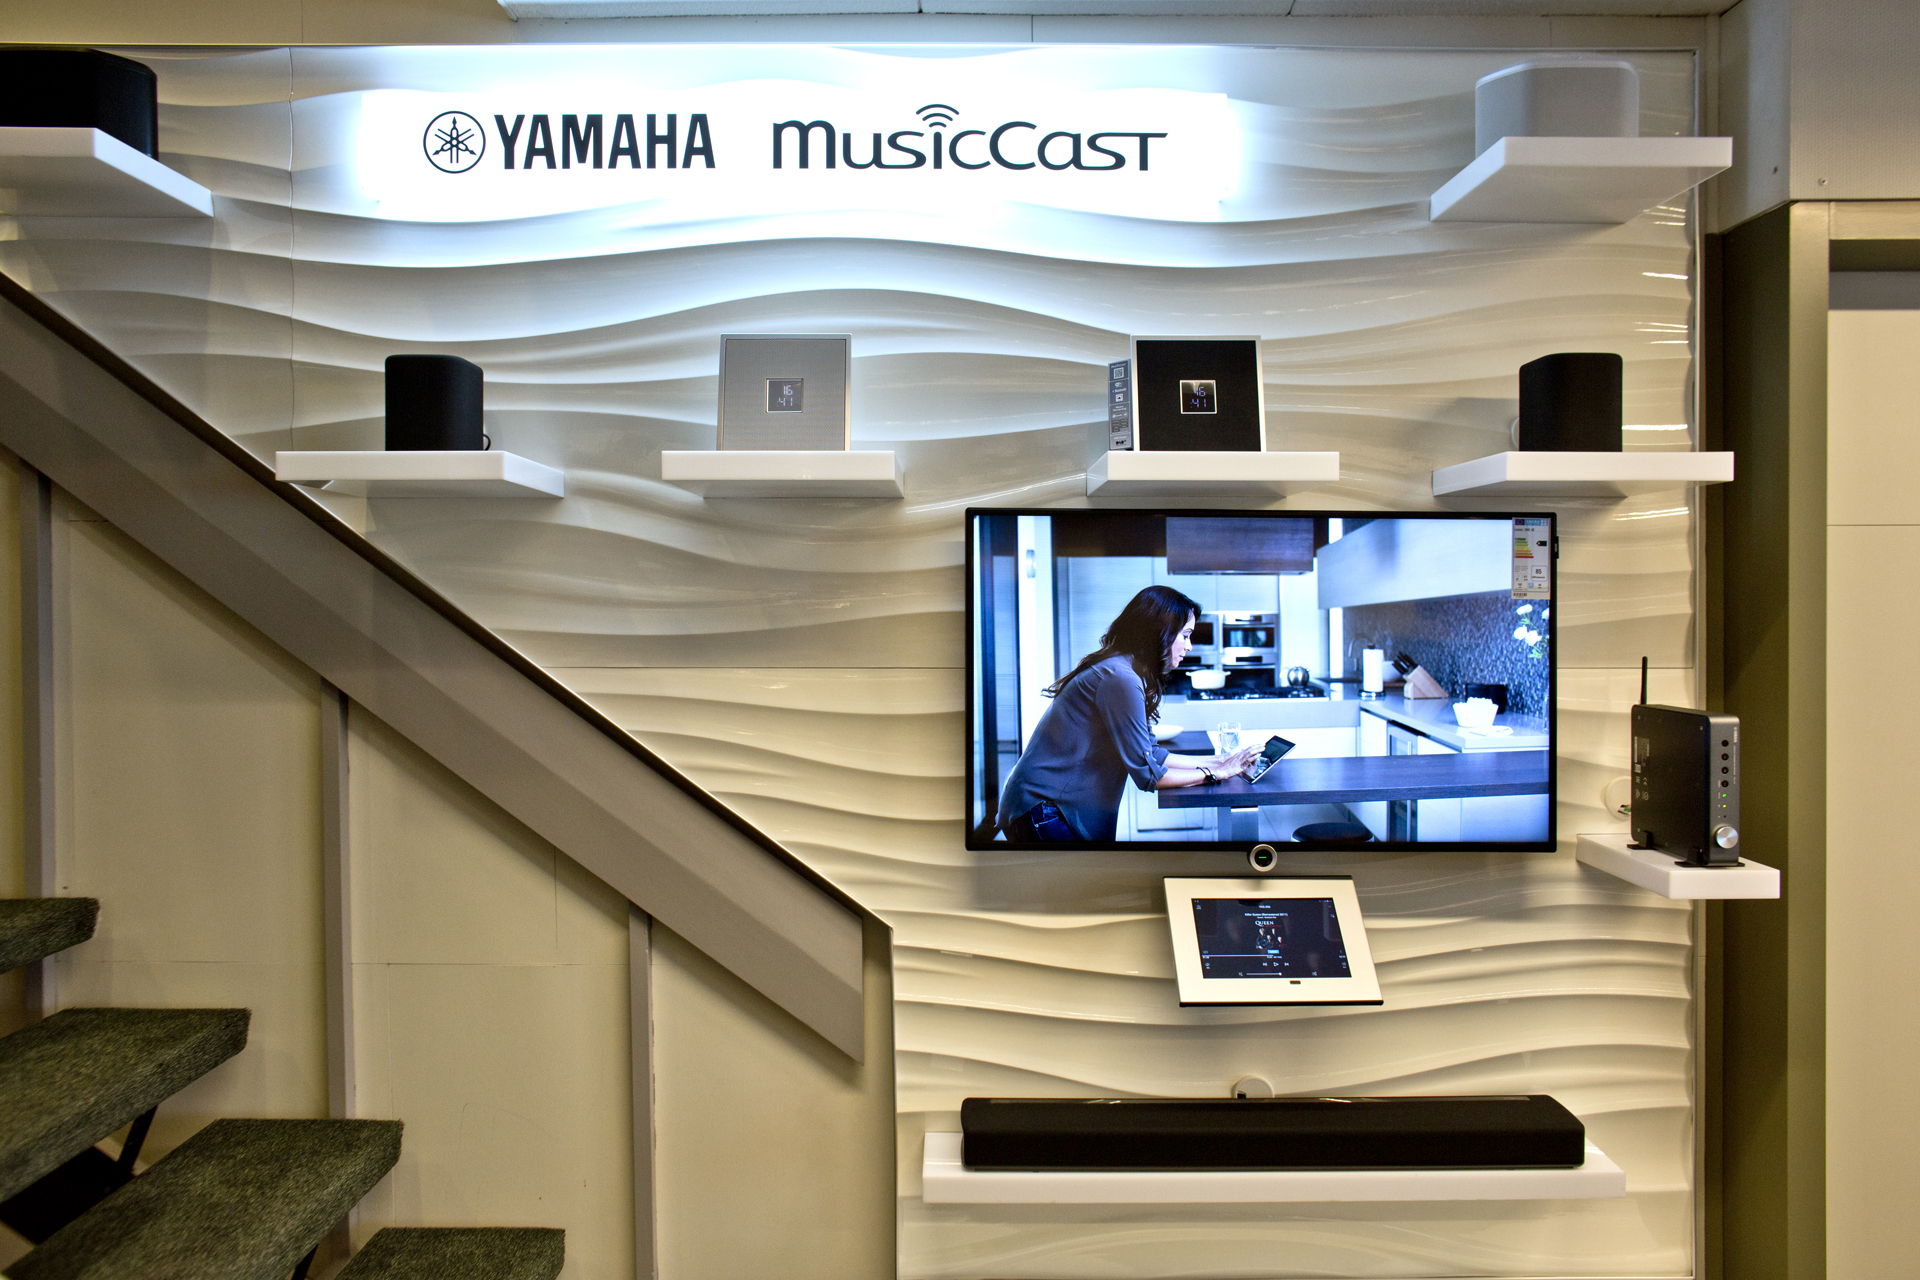 Yamaha Music Cast Streaming afdeling bij Poulissen Audio Video Center